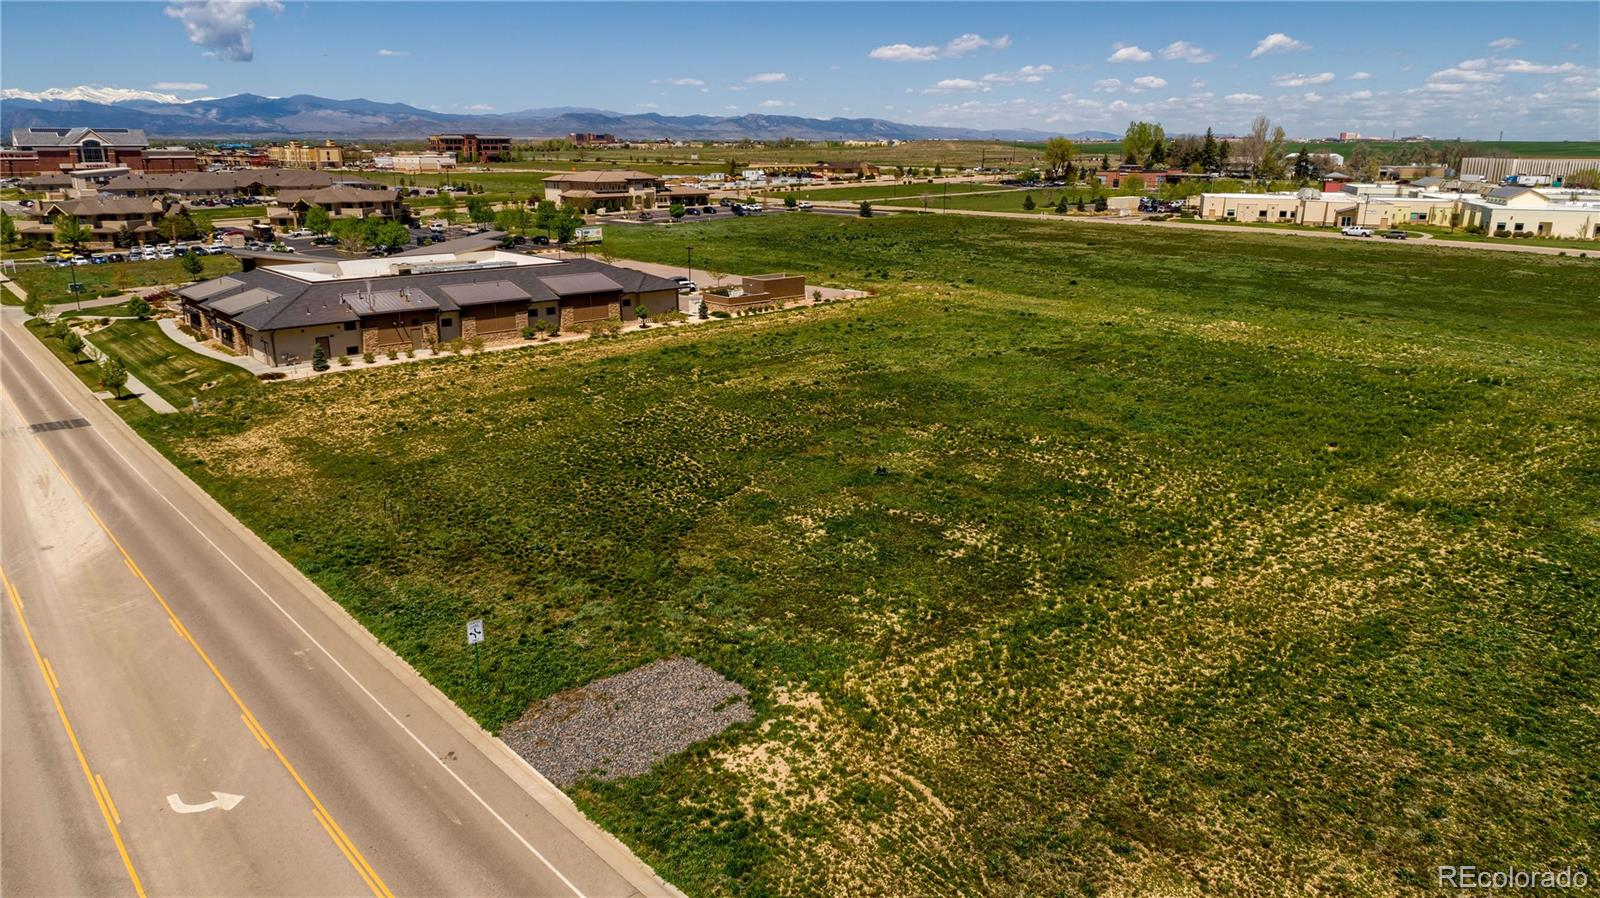 0 Ronald Reagan Boulevard, Johnstown, CO 80534 - Johnstown, CO real estate listing